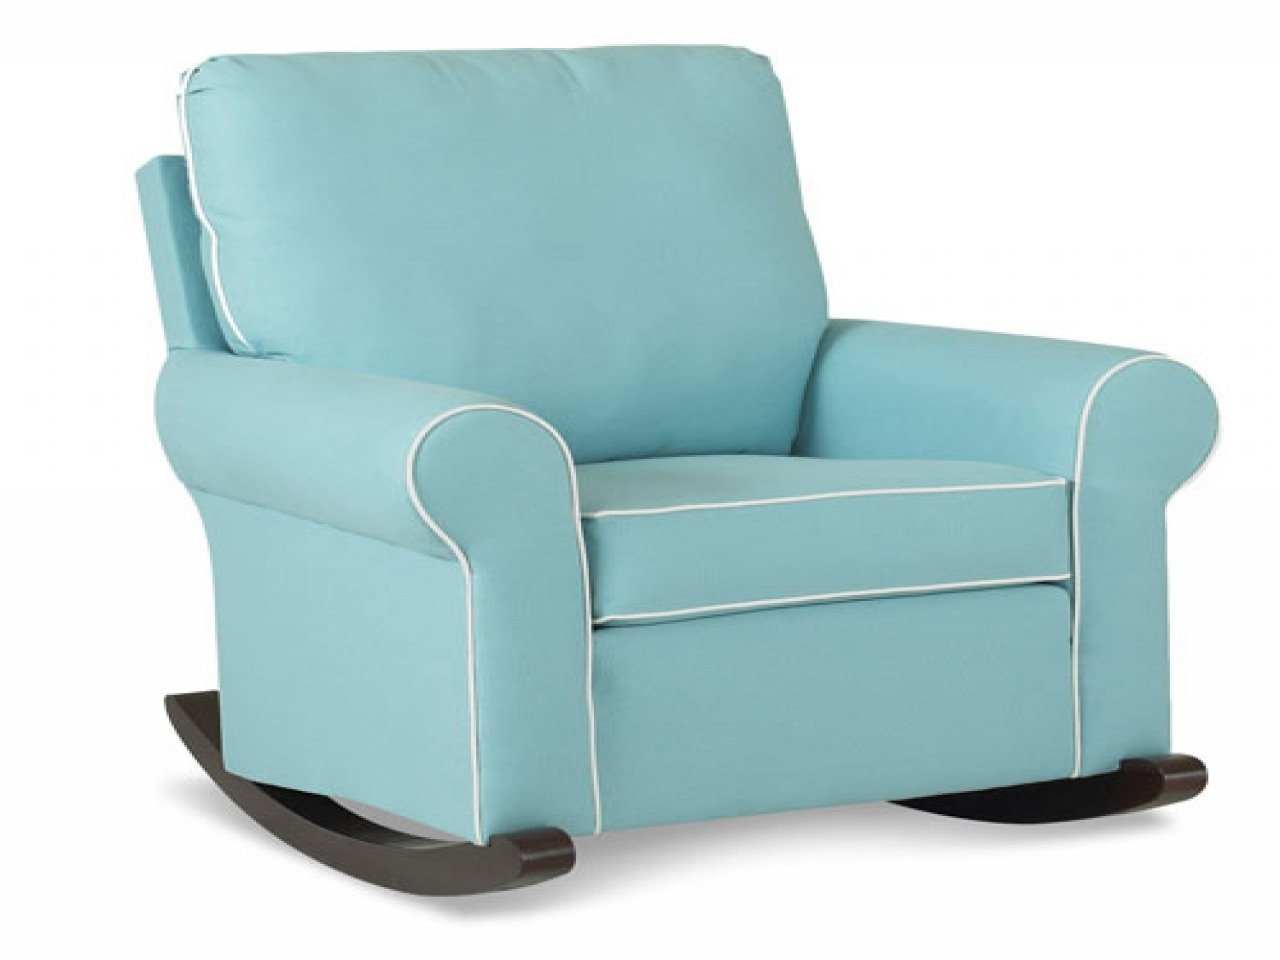 Sofa Ba Rocking Chairs Modern For Nursery Chair Concept Tugrahan Within Sofa Rocking Chairs (Image 7 of 15)